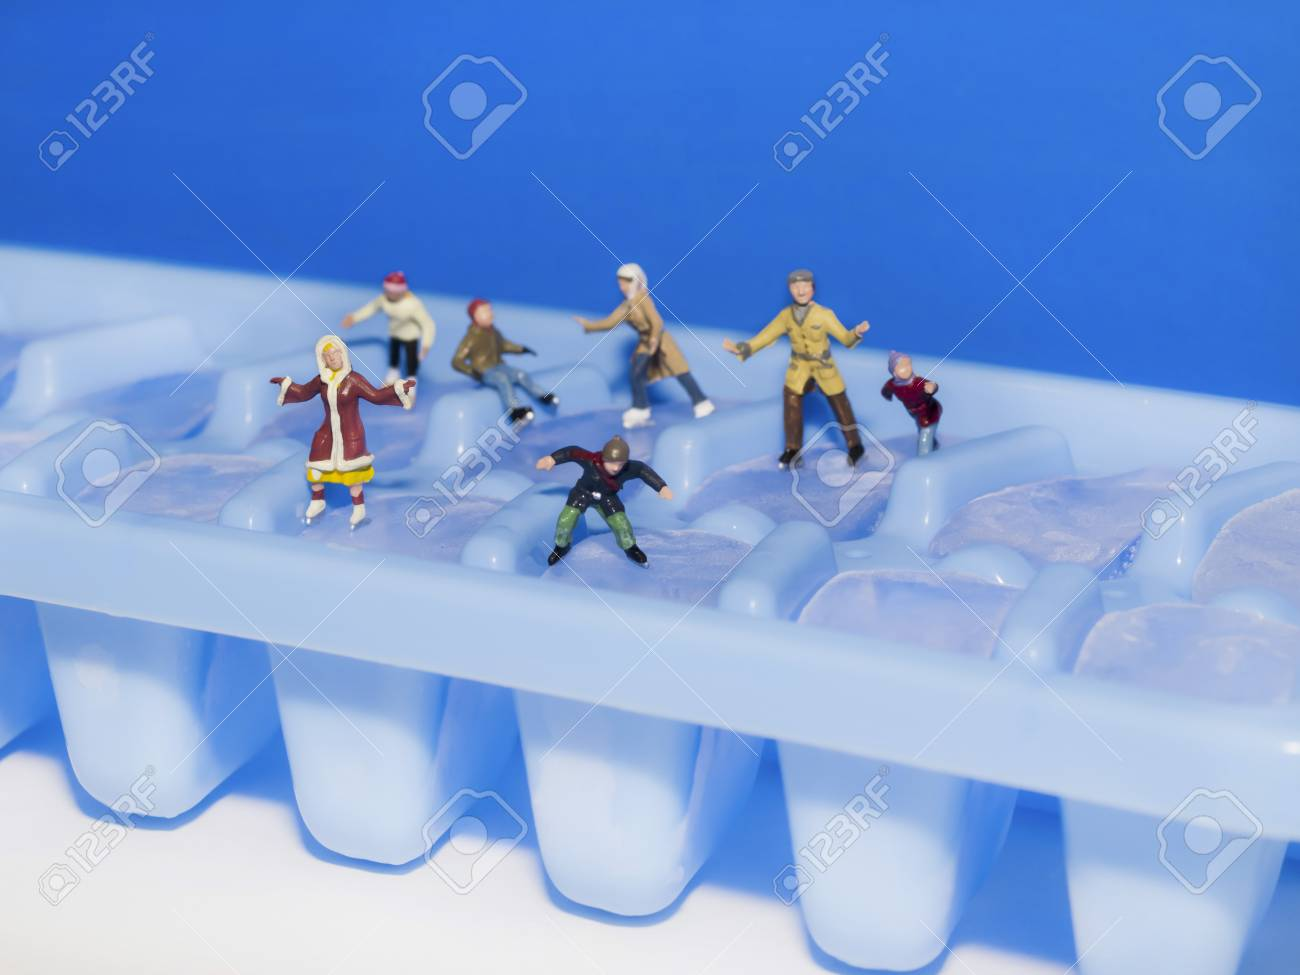 HO scale figures skating on ice cubes